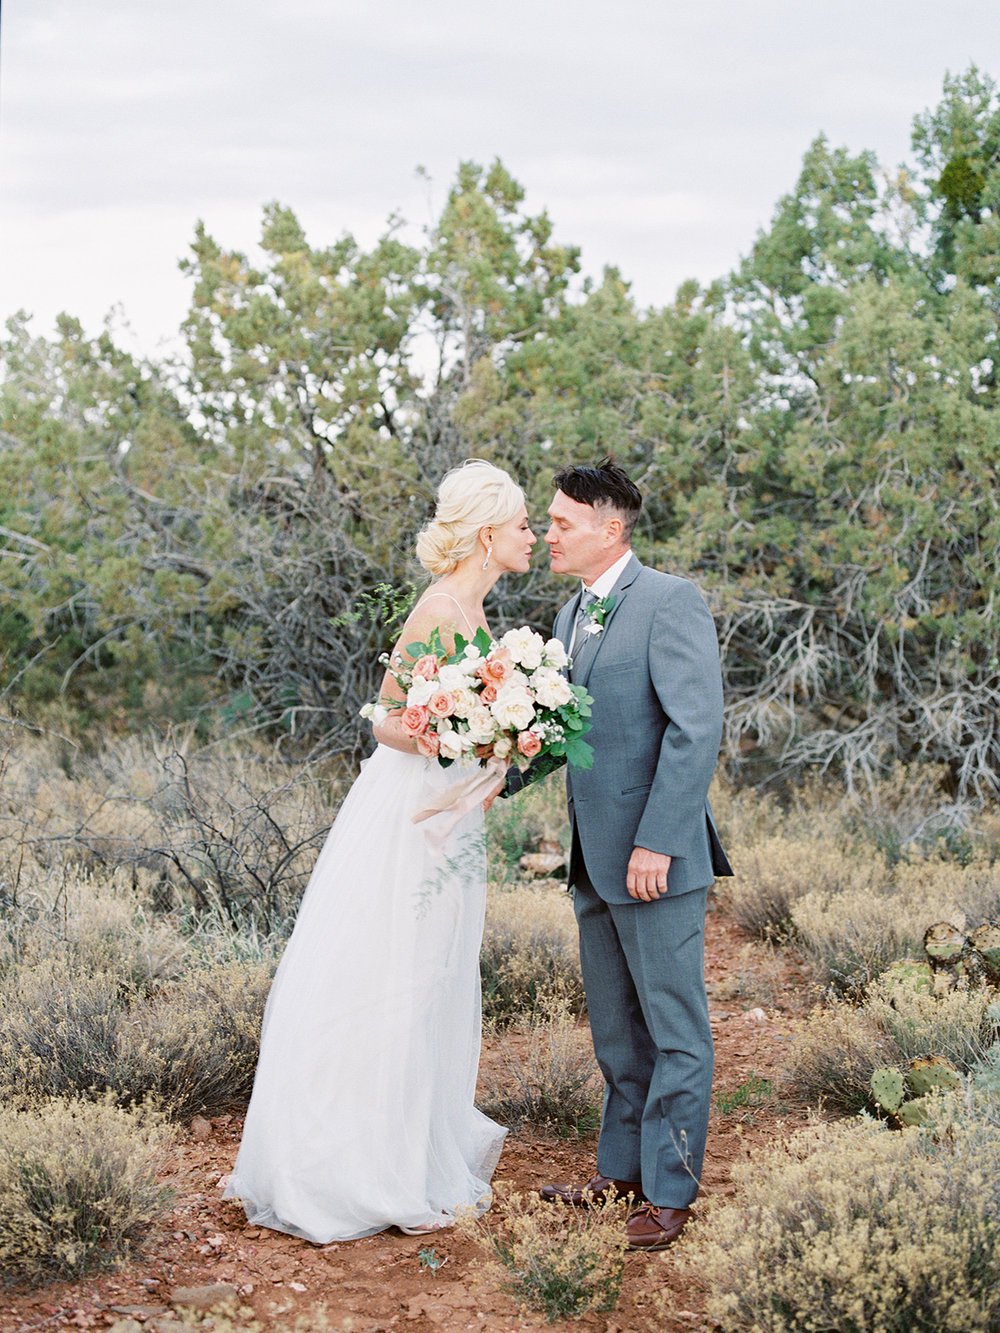 York Sedona Elopement - Ball Photo Co Fine Art Film Wedding Photography-59.jpg